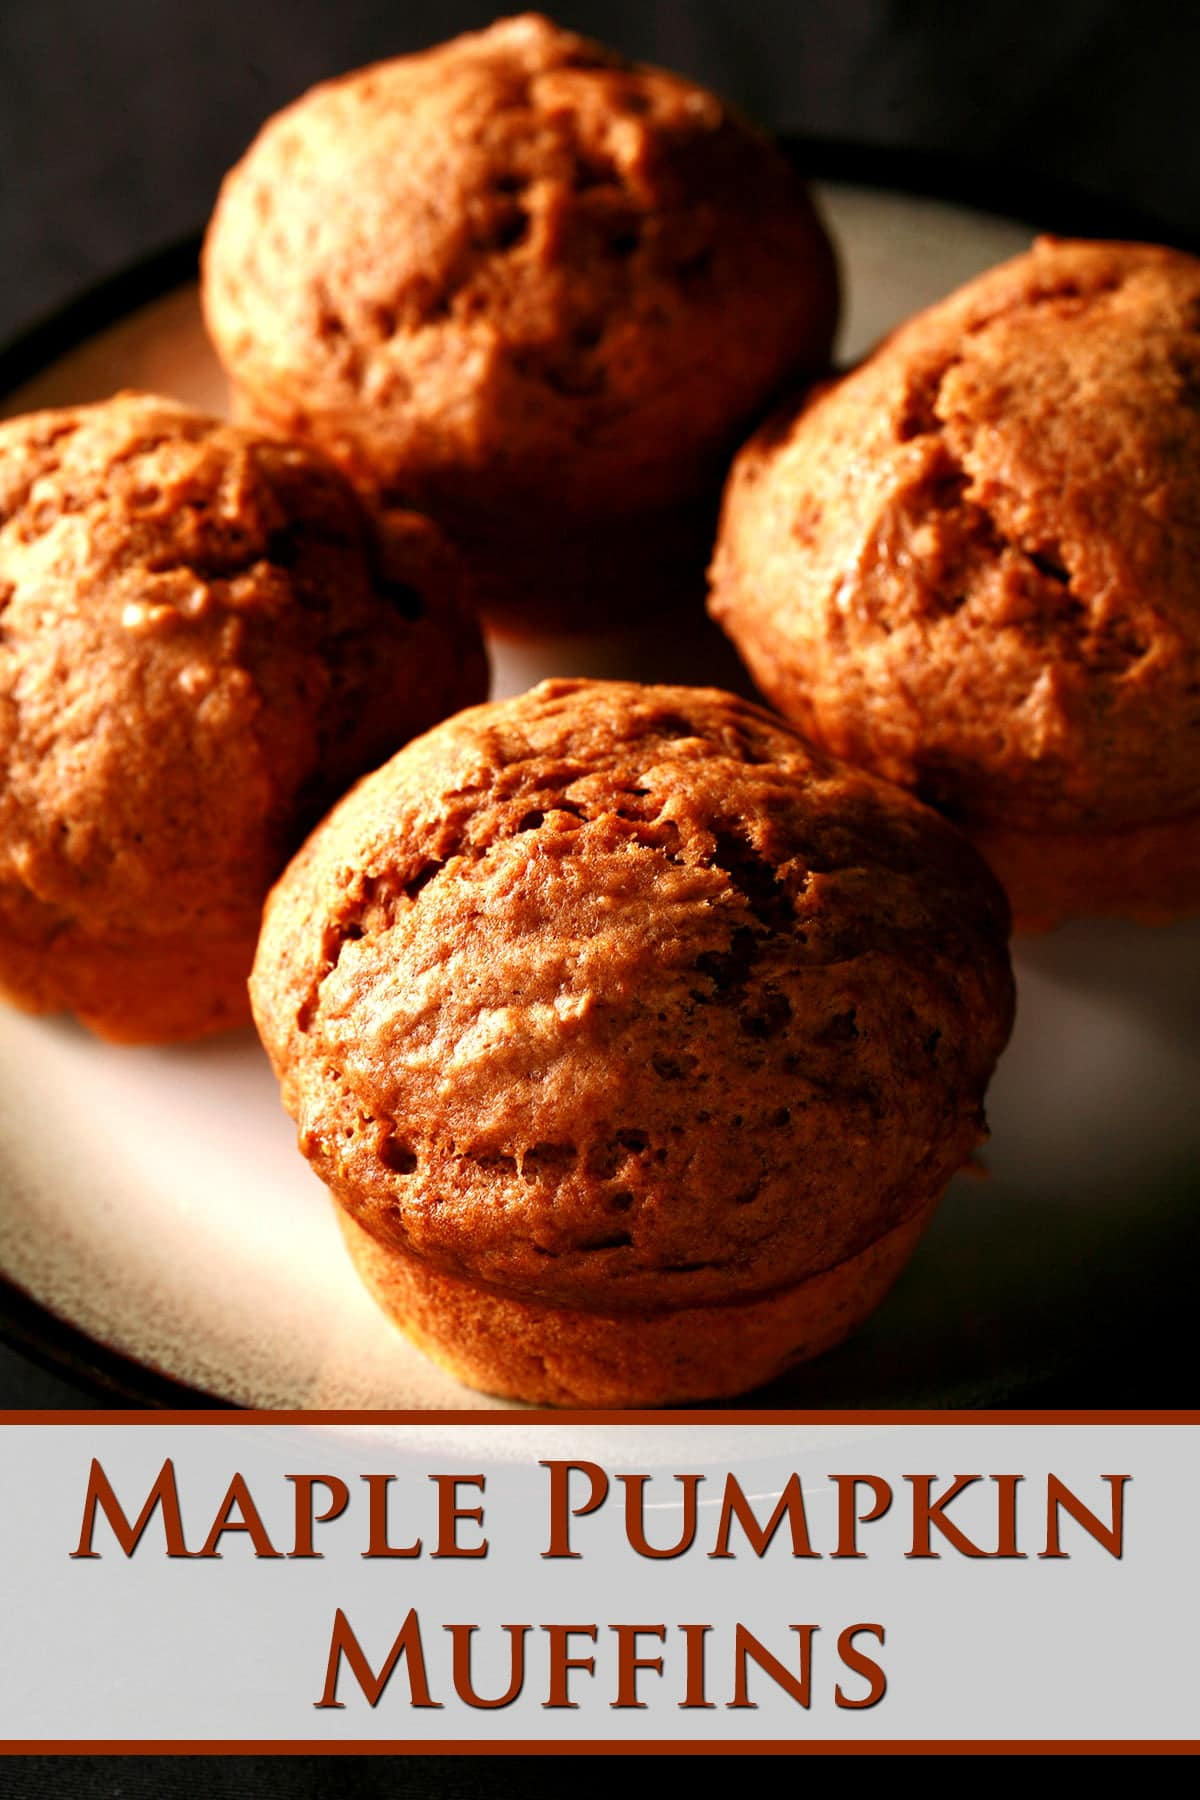 4 maple pumpkin spiced muffins are arranged on a small white plate.